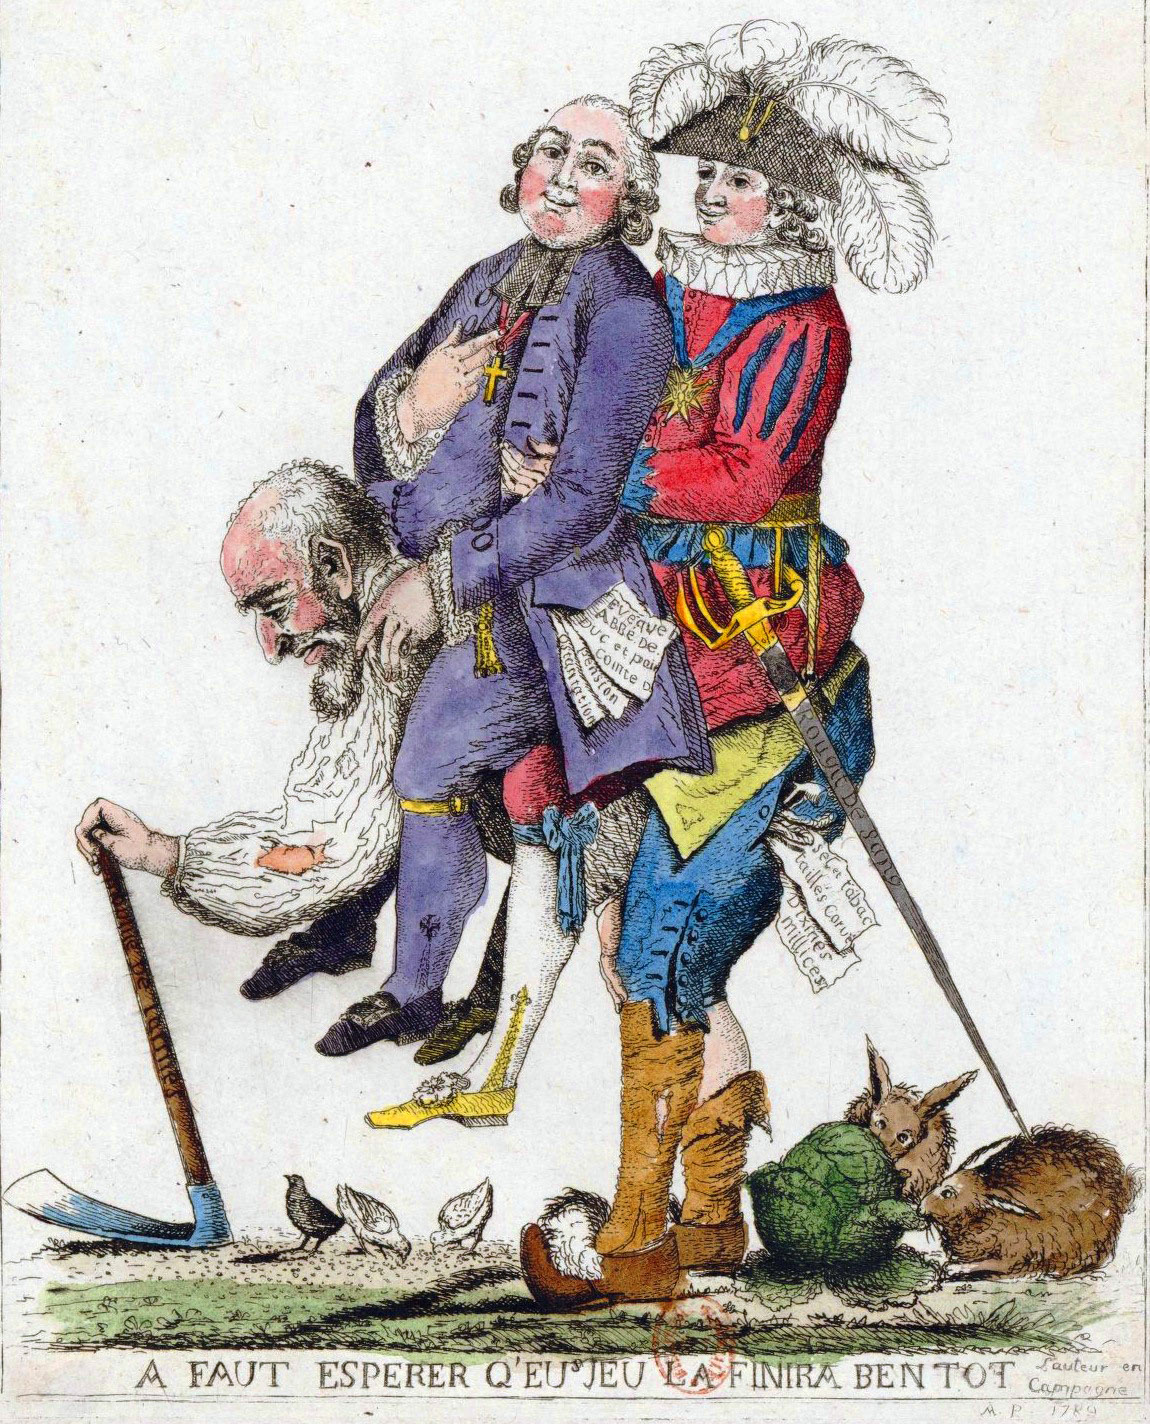 french revolution simple english the encyclopedia caricature of the third estate carrying the first estate clergy and the second estate nobility on its back before the revolution